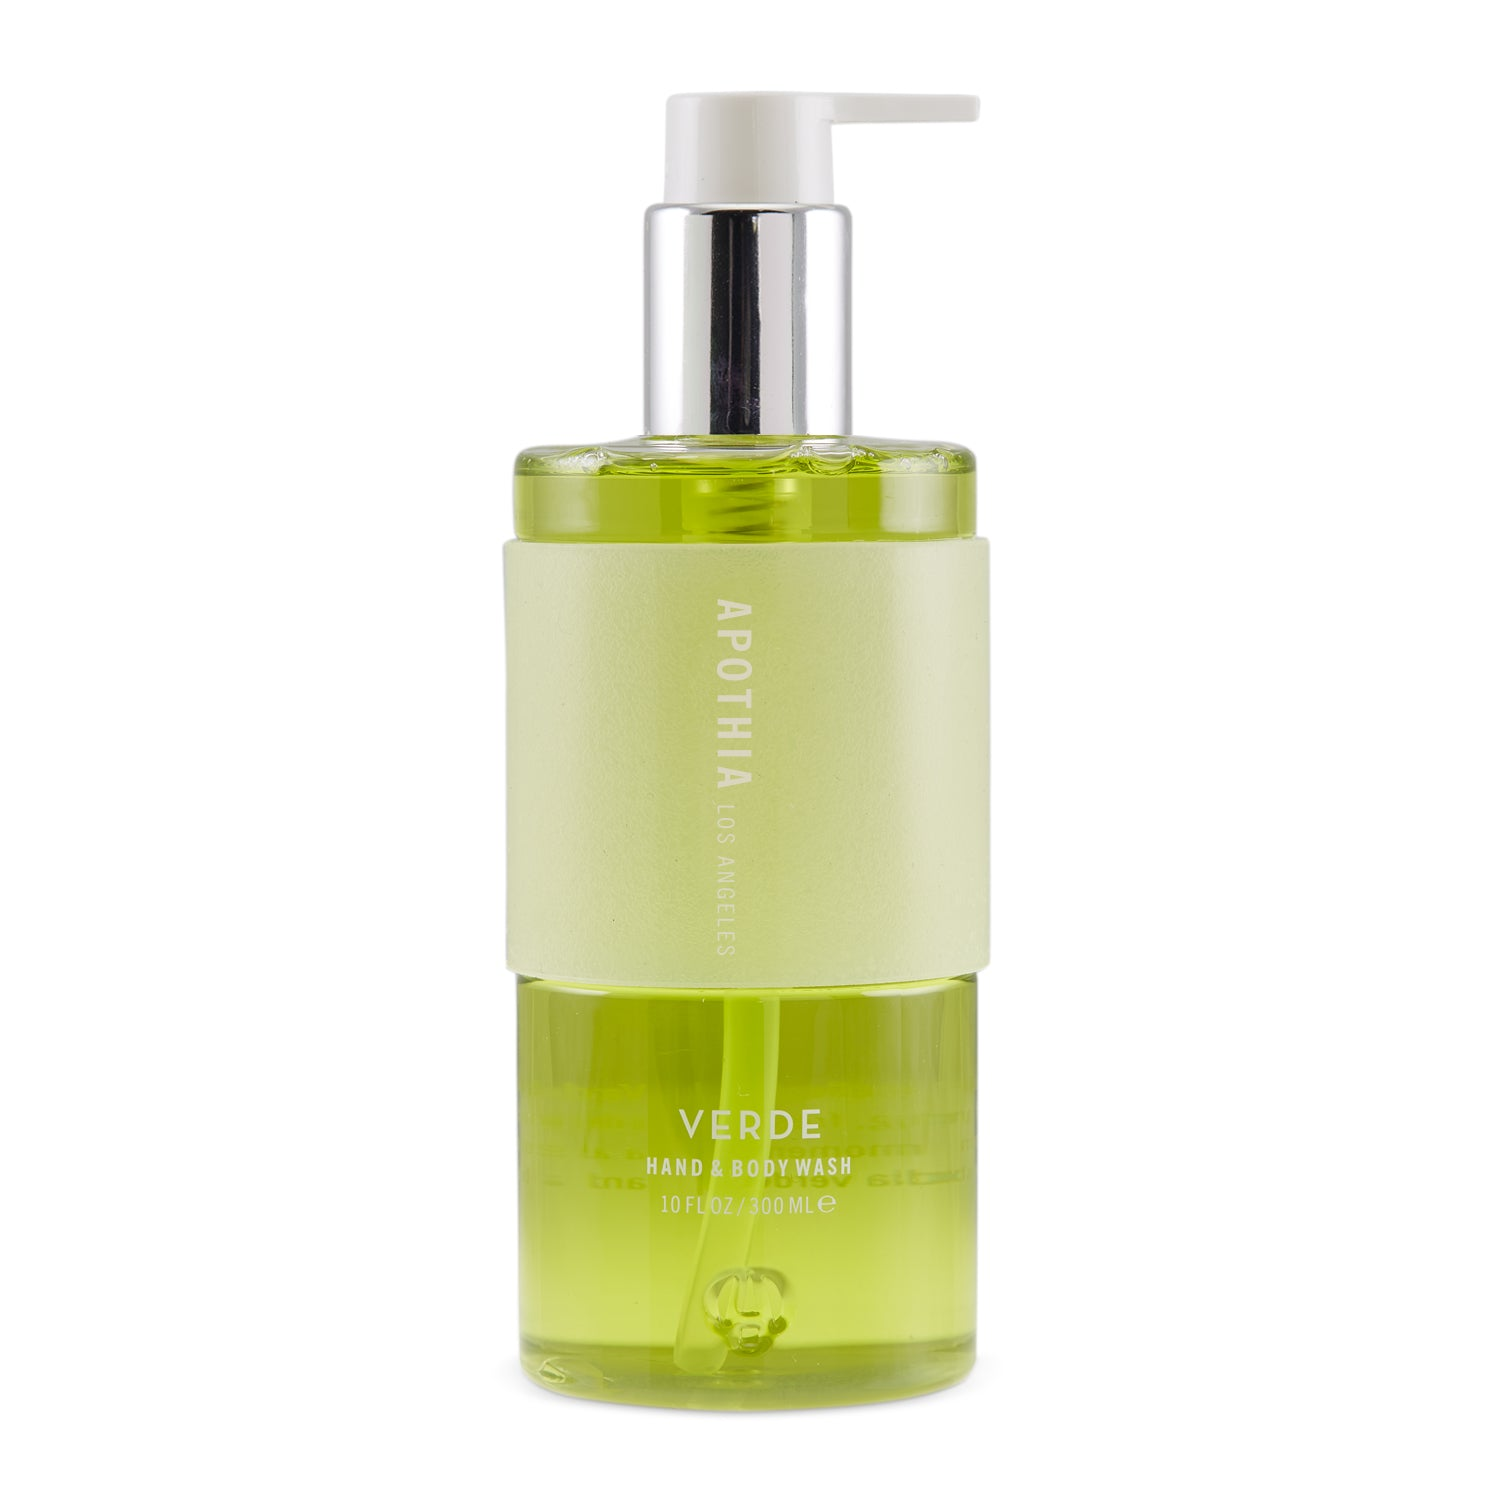 APOTHIA Hand & Body Wash - Verde